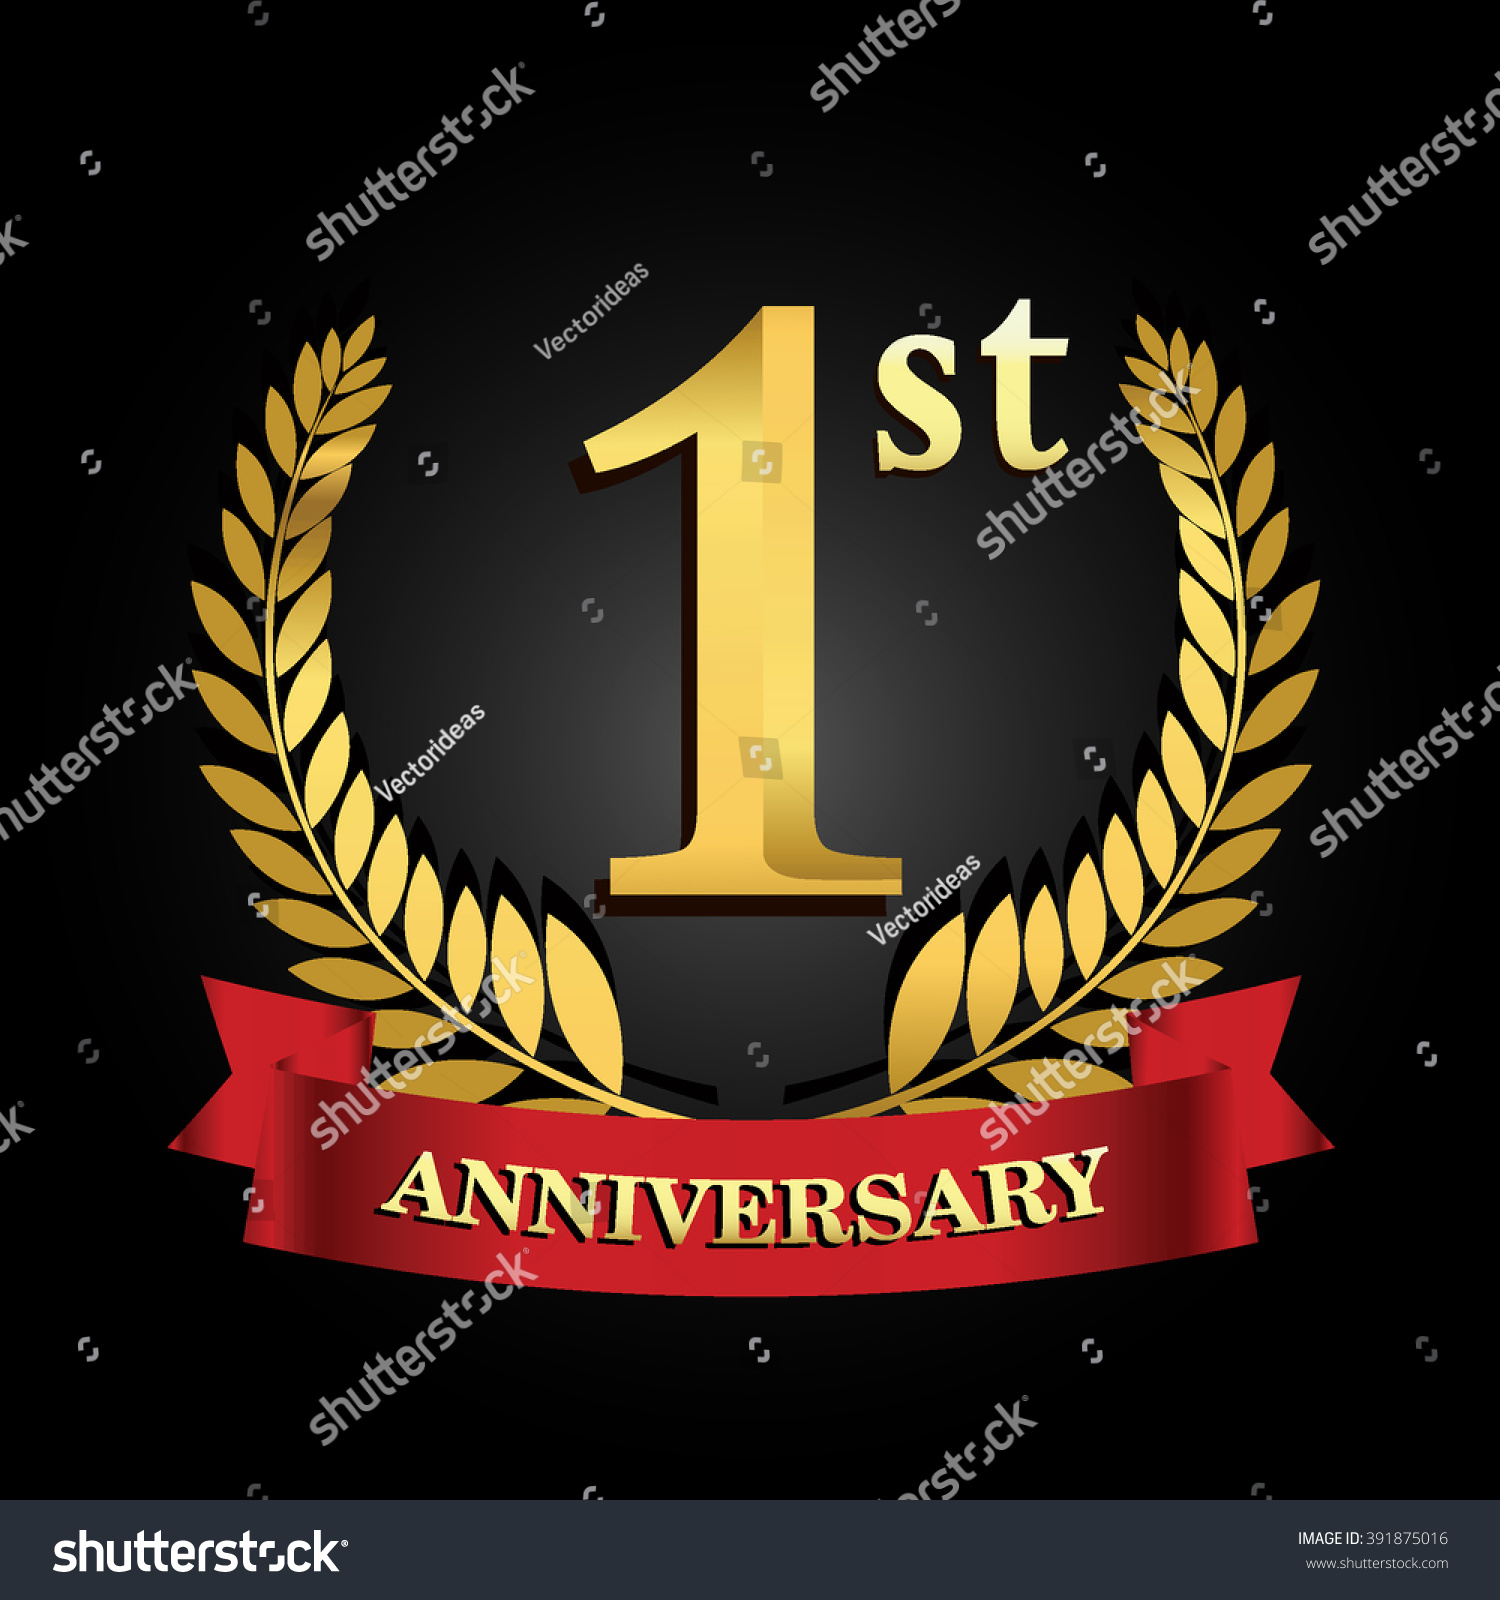 St anniversary logo red ribbon golden stock vector